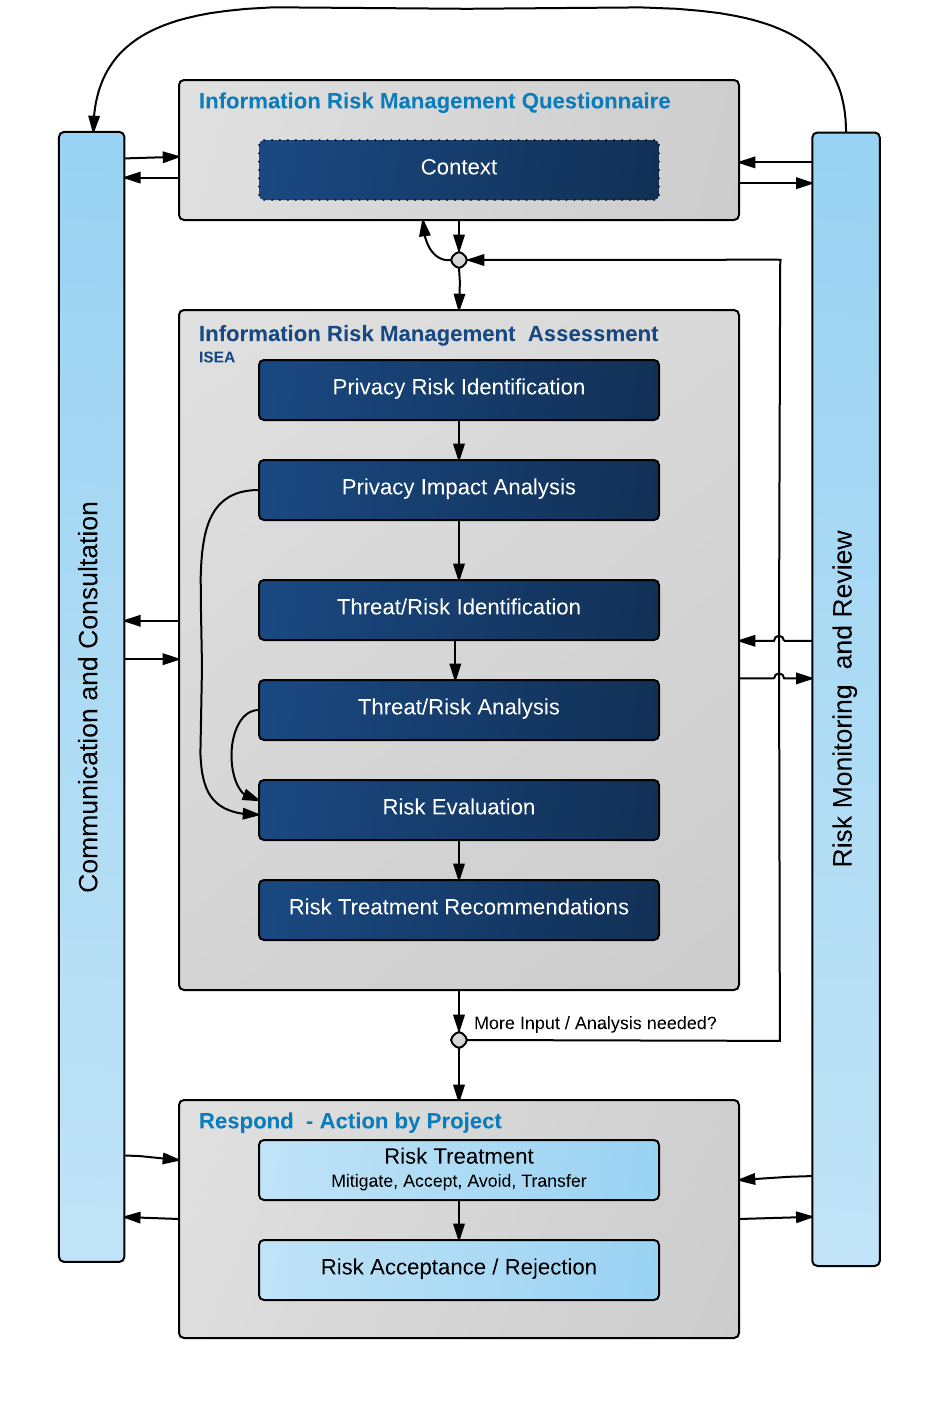 Information Risk Management Process_2